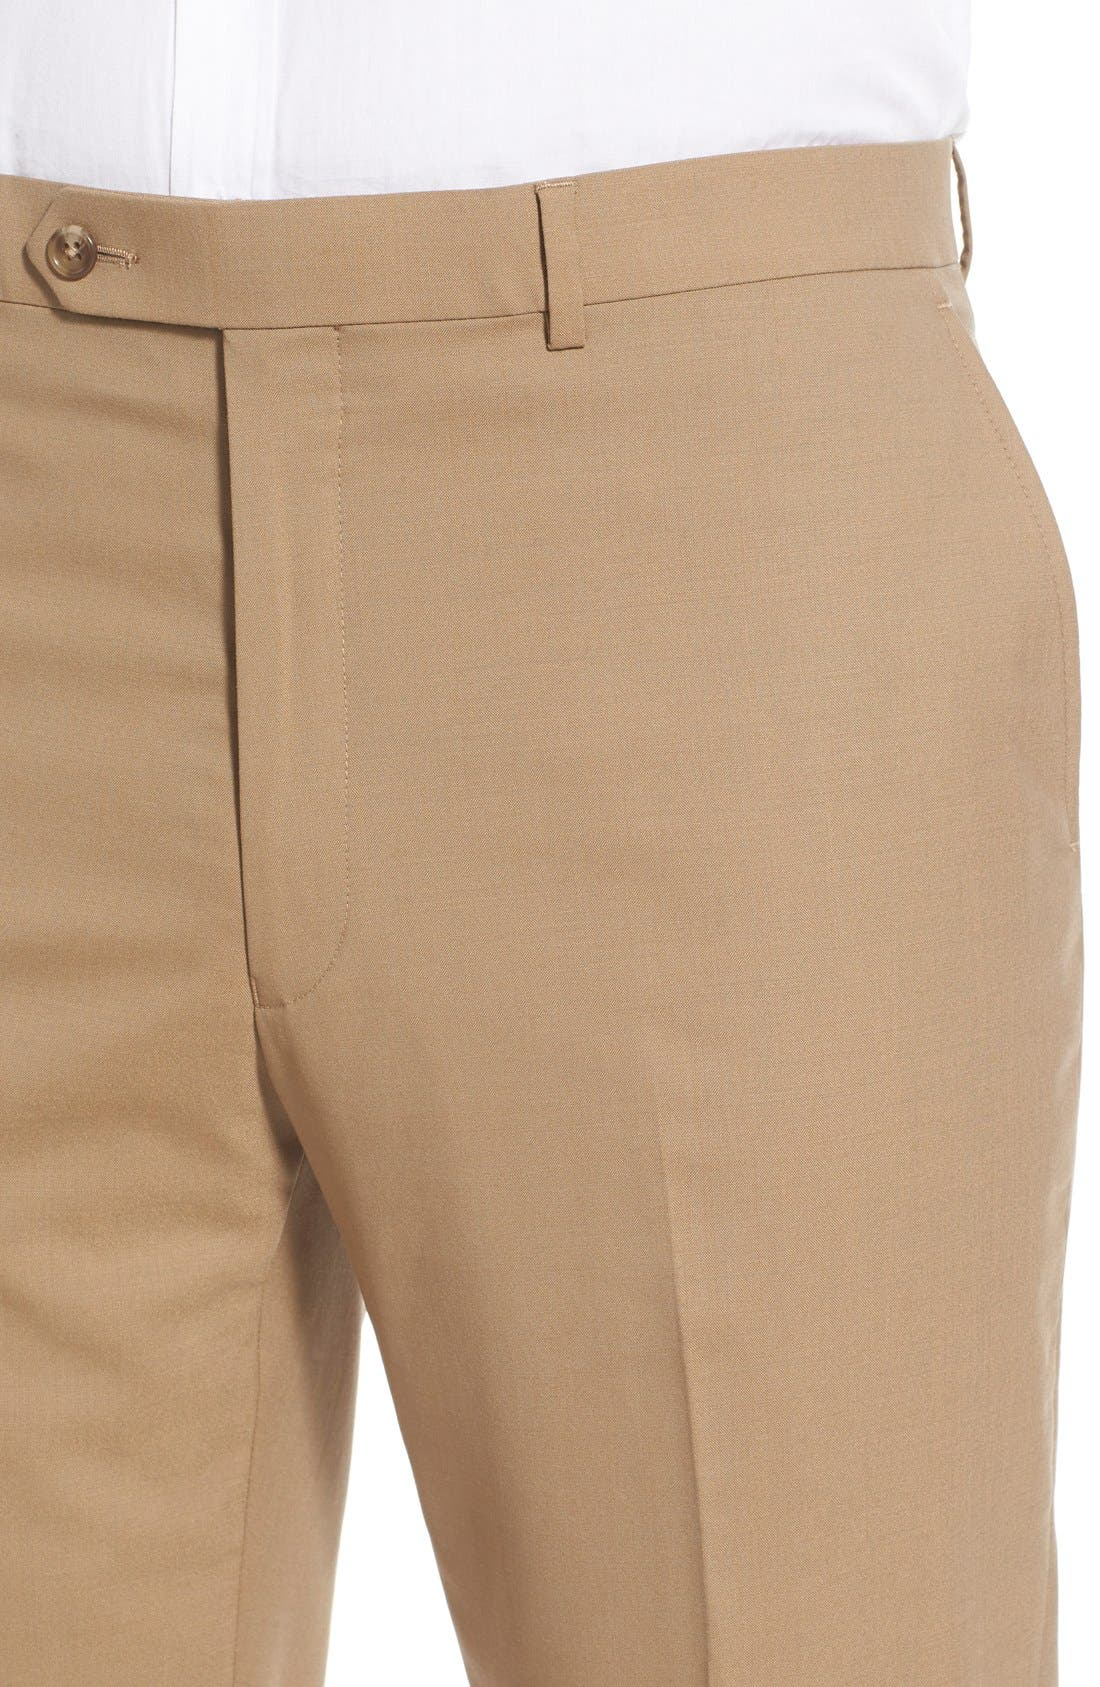 Flat Front Solid Stretch Wool Trousers,                             Alternate thumbnail 4, color,                             260